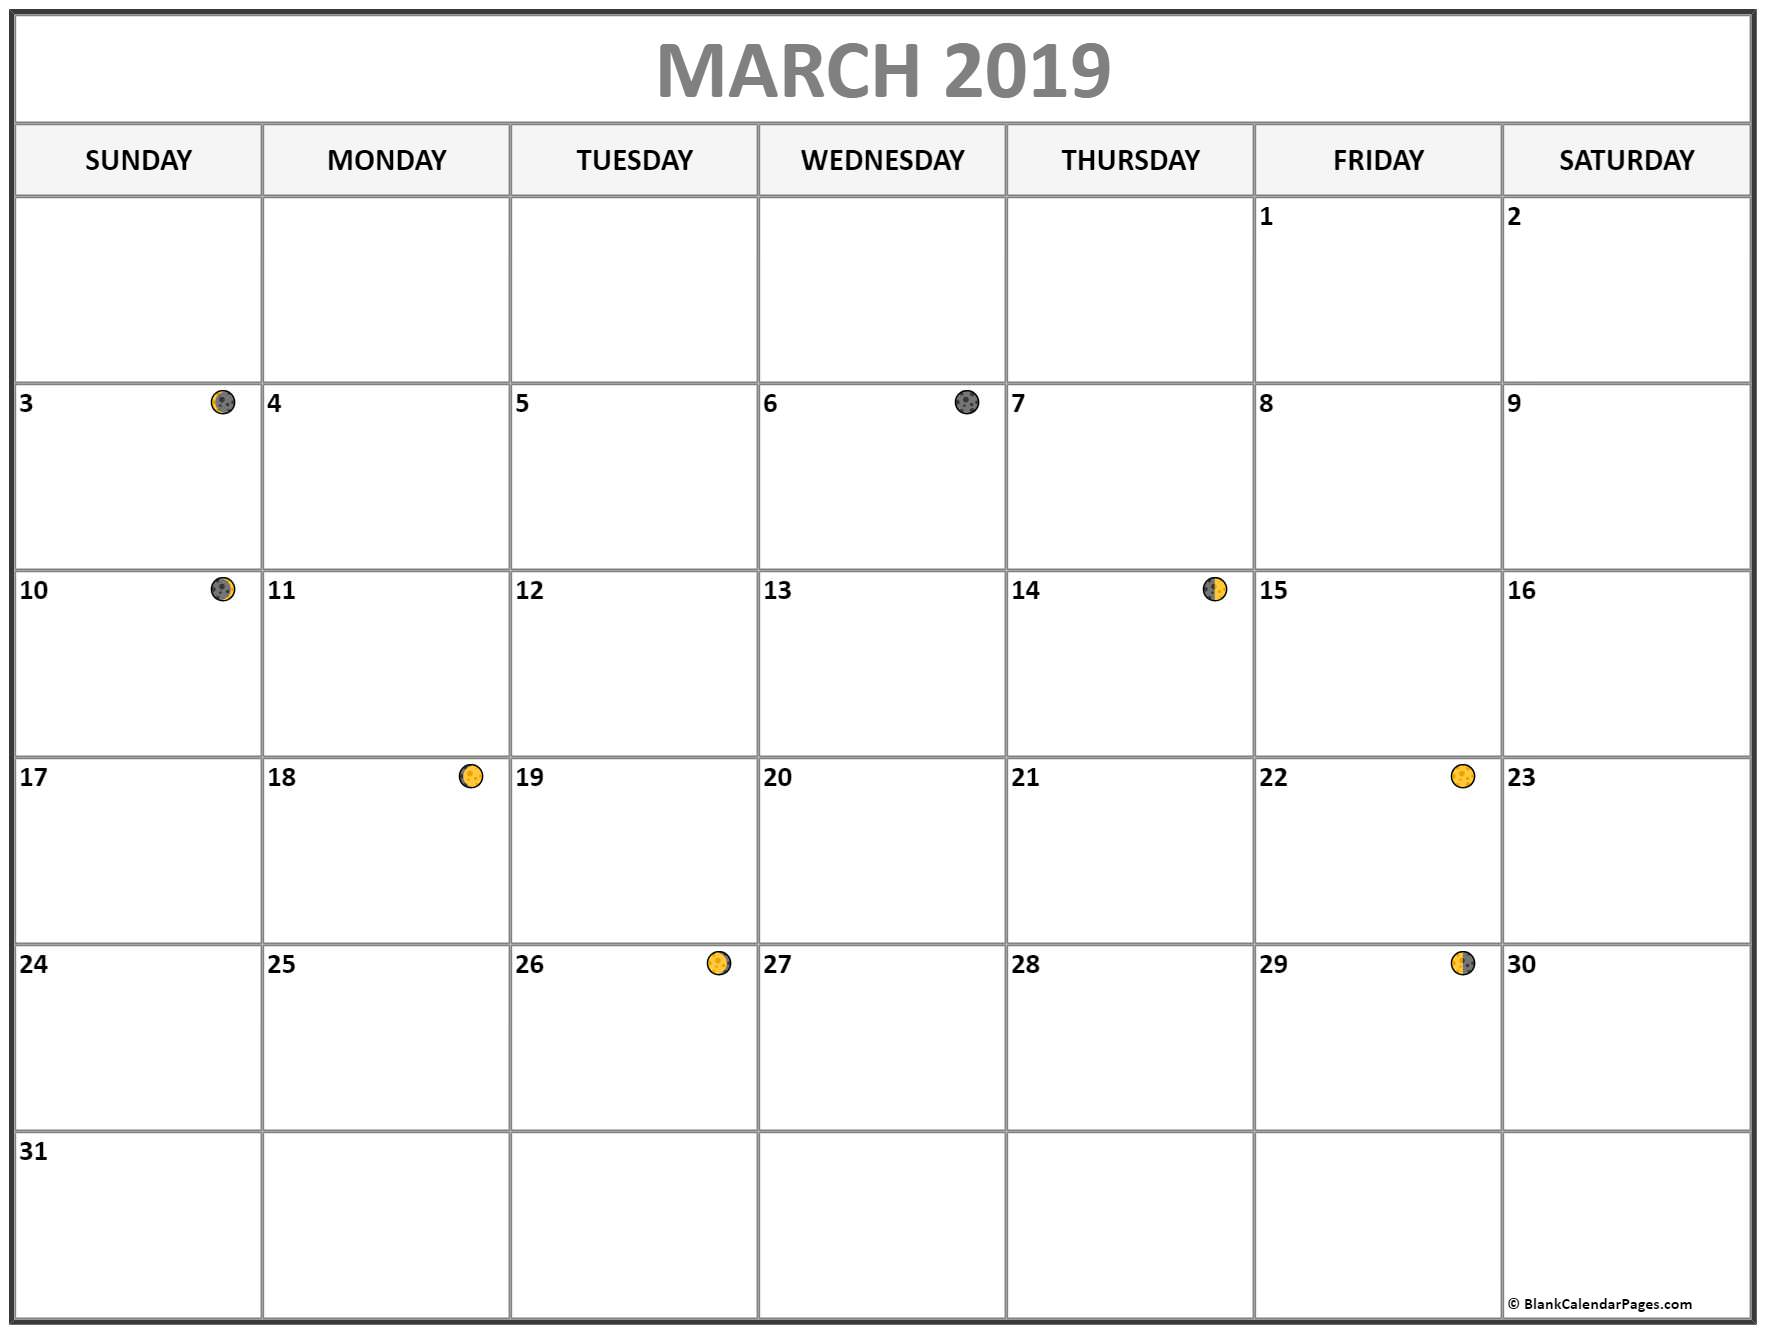 Lunar Moon Phases March 2019 Calendar